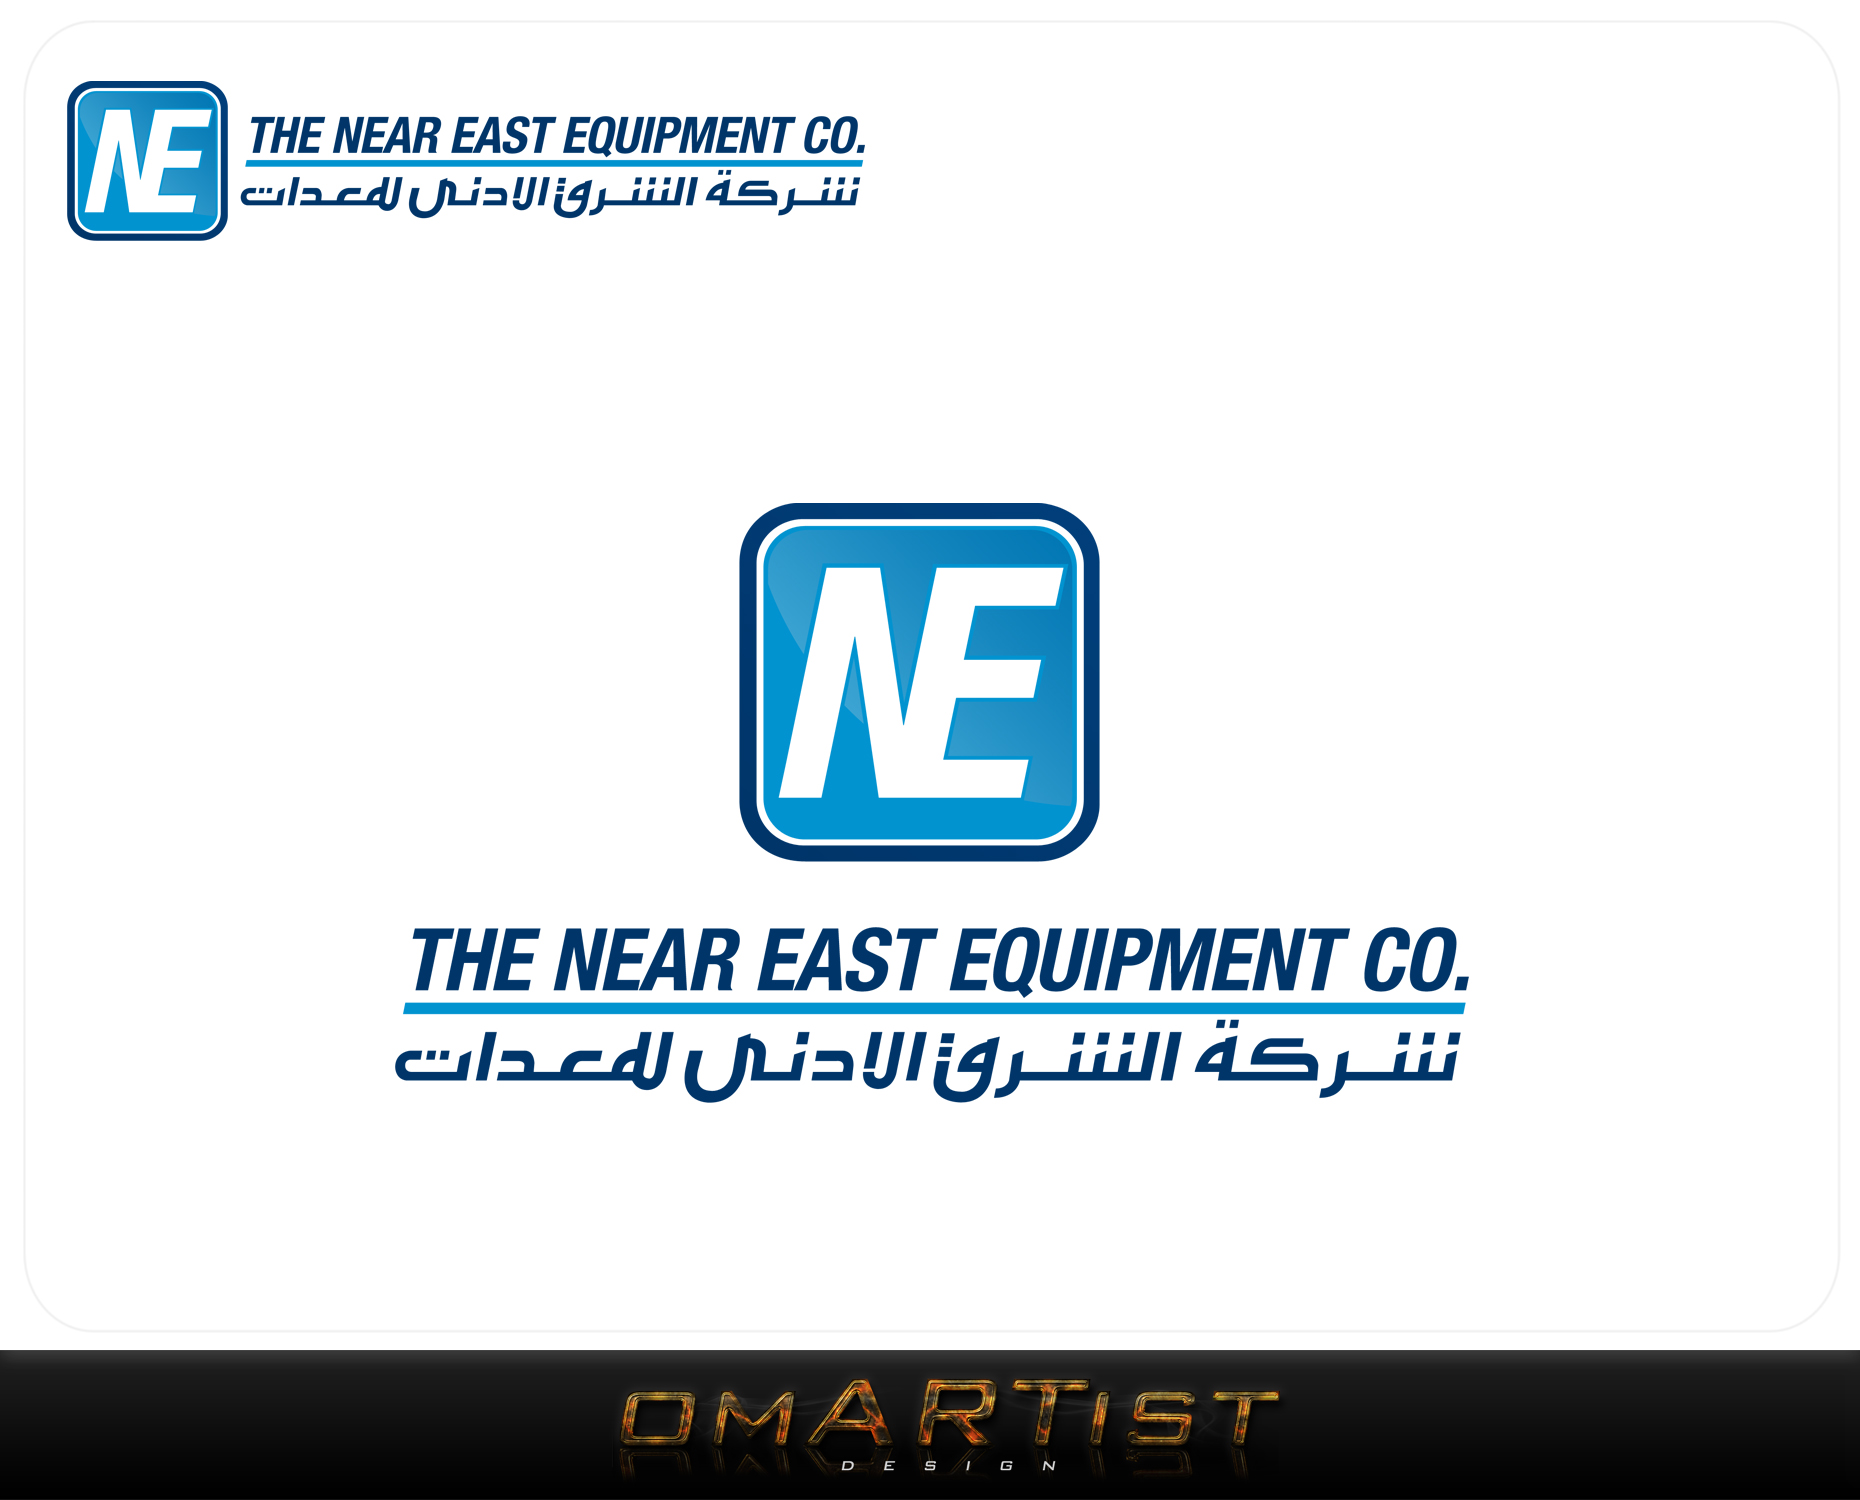 Logo Design by omARTist - Entry No. 116 in the Logo Design Contest Imaginative Logo Design for The Near East Equipment Co..